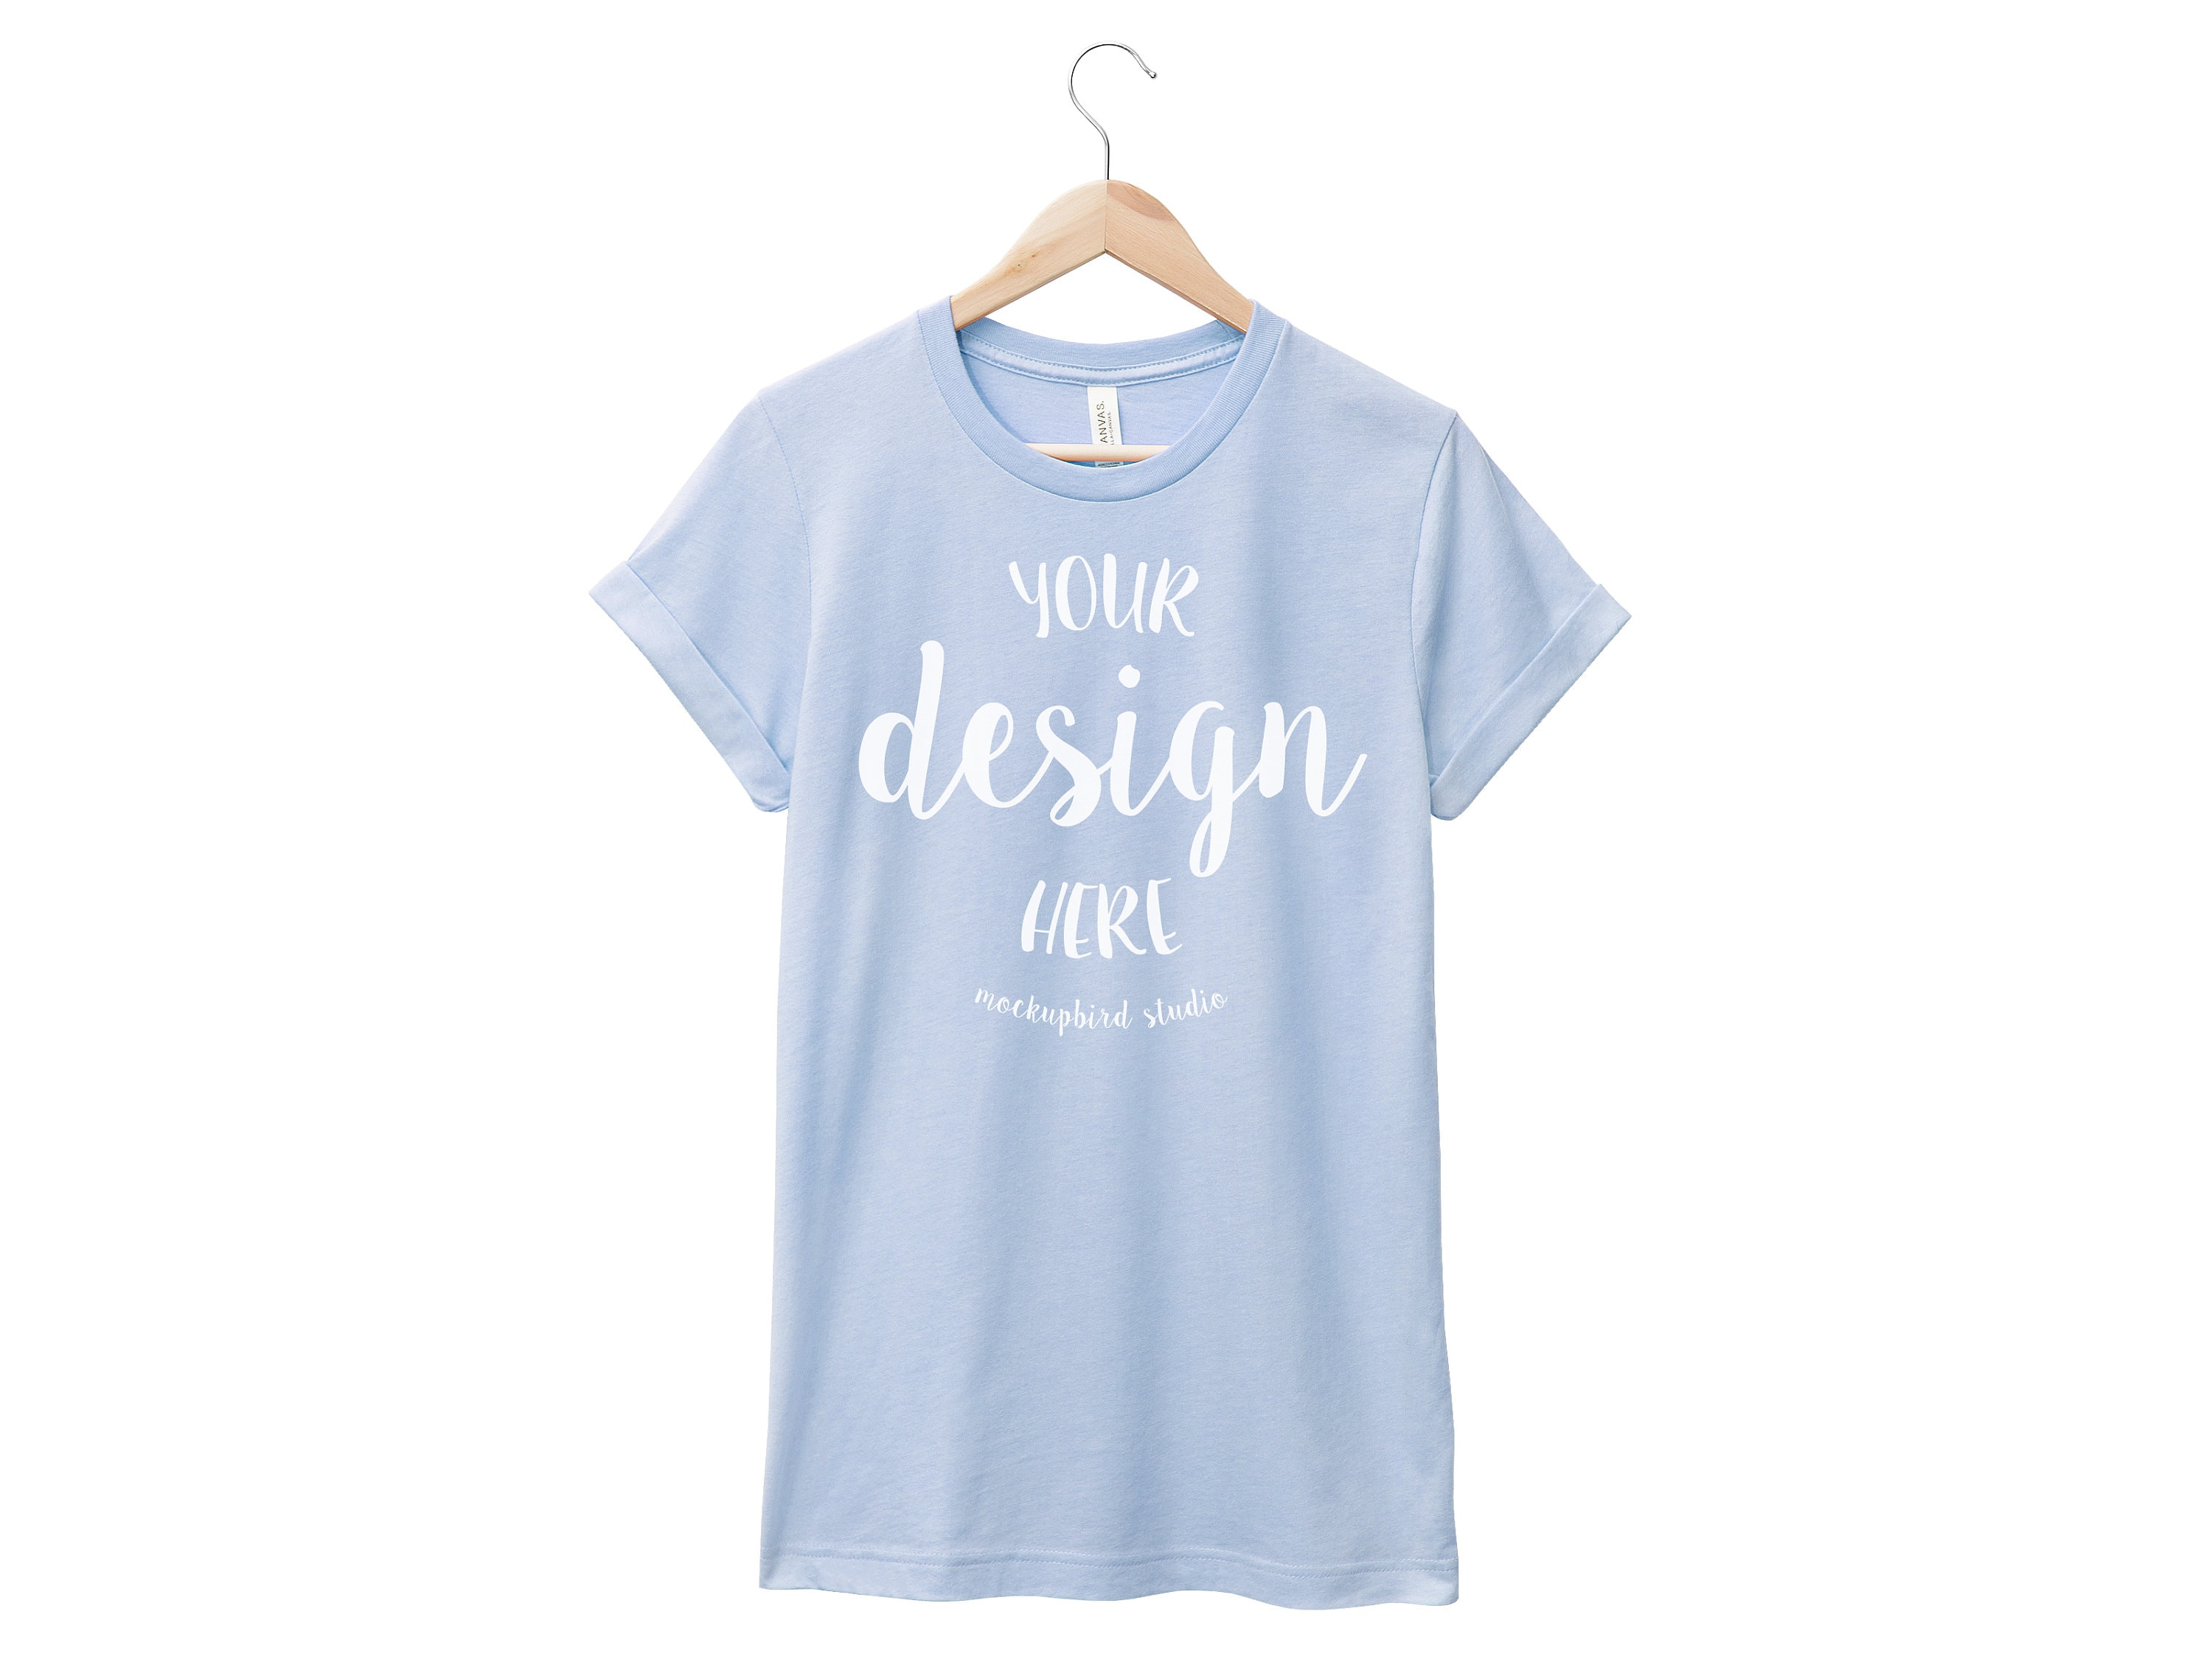 Bella Canvas 3001 Mockup T Shirt Mockup Heather Blue Tshirt Etsy